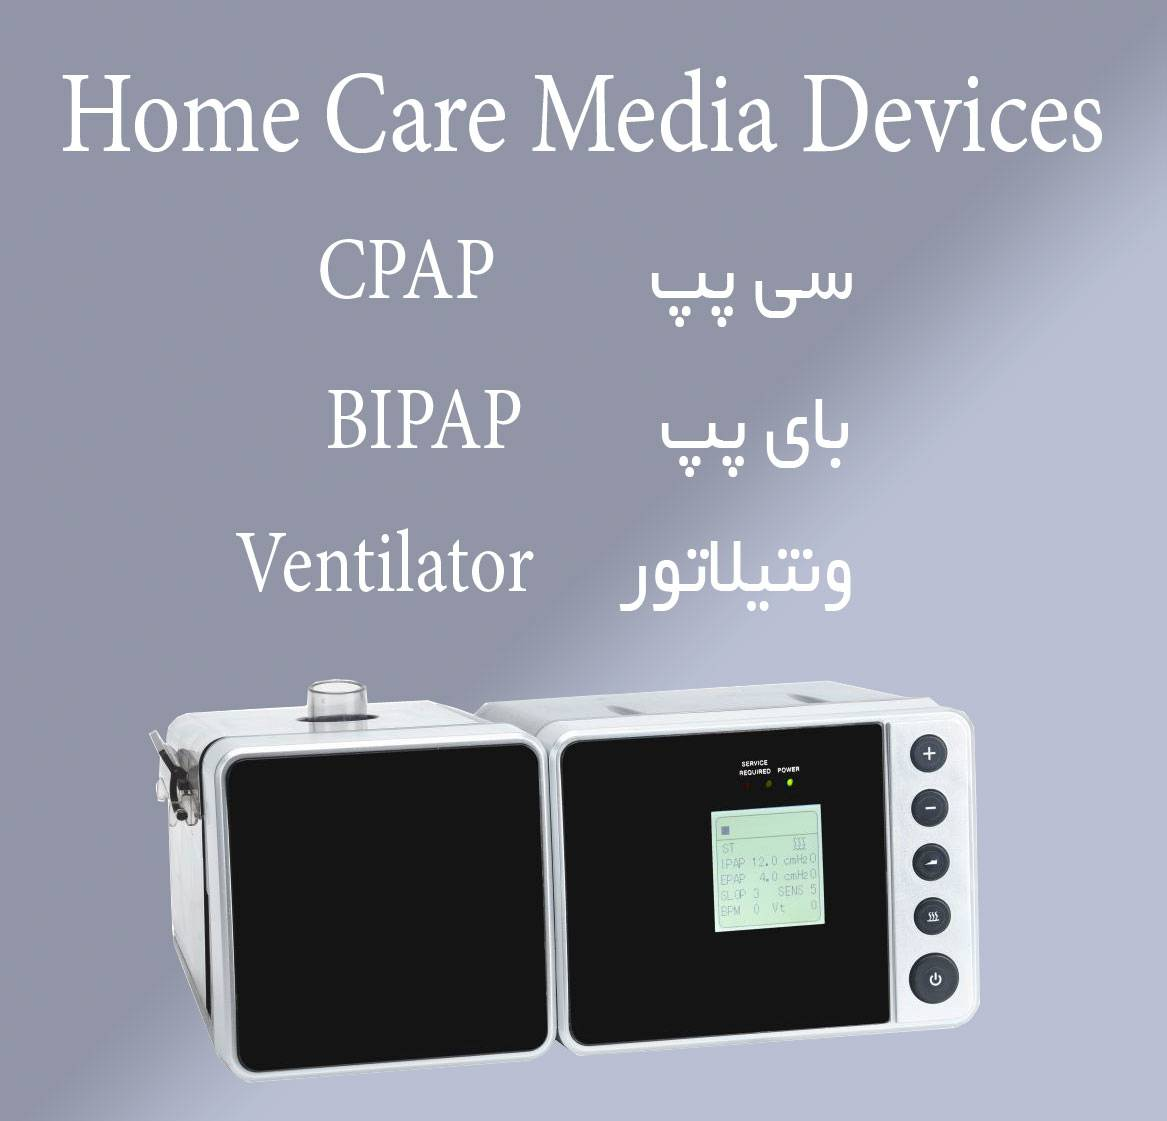 HomeCare Medical Devices